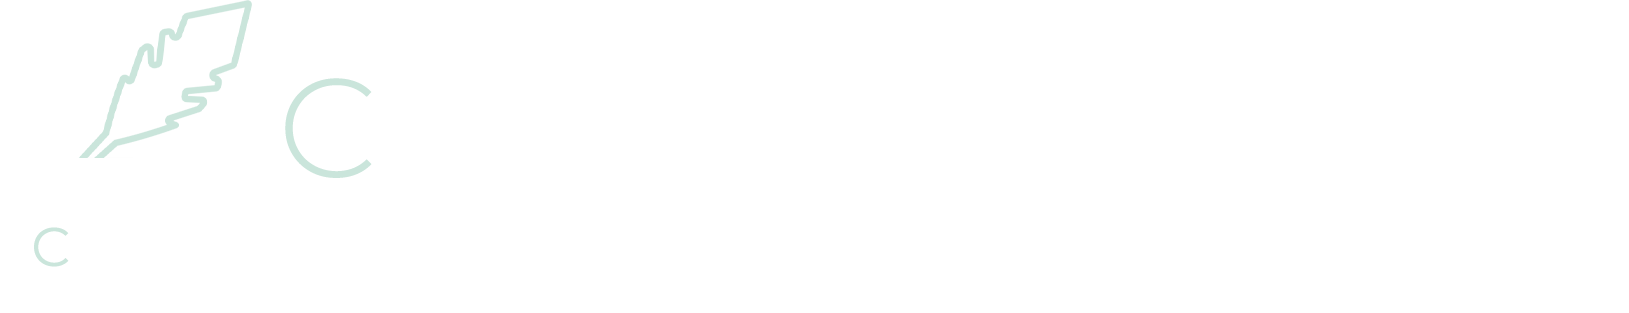 Calma Copywriting & Web Design Logo